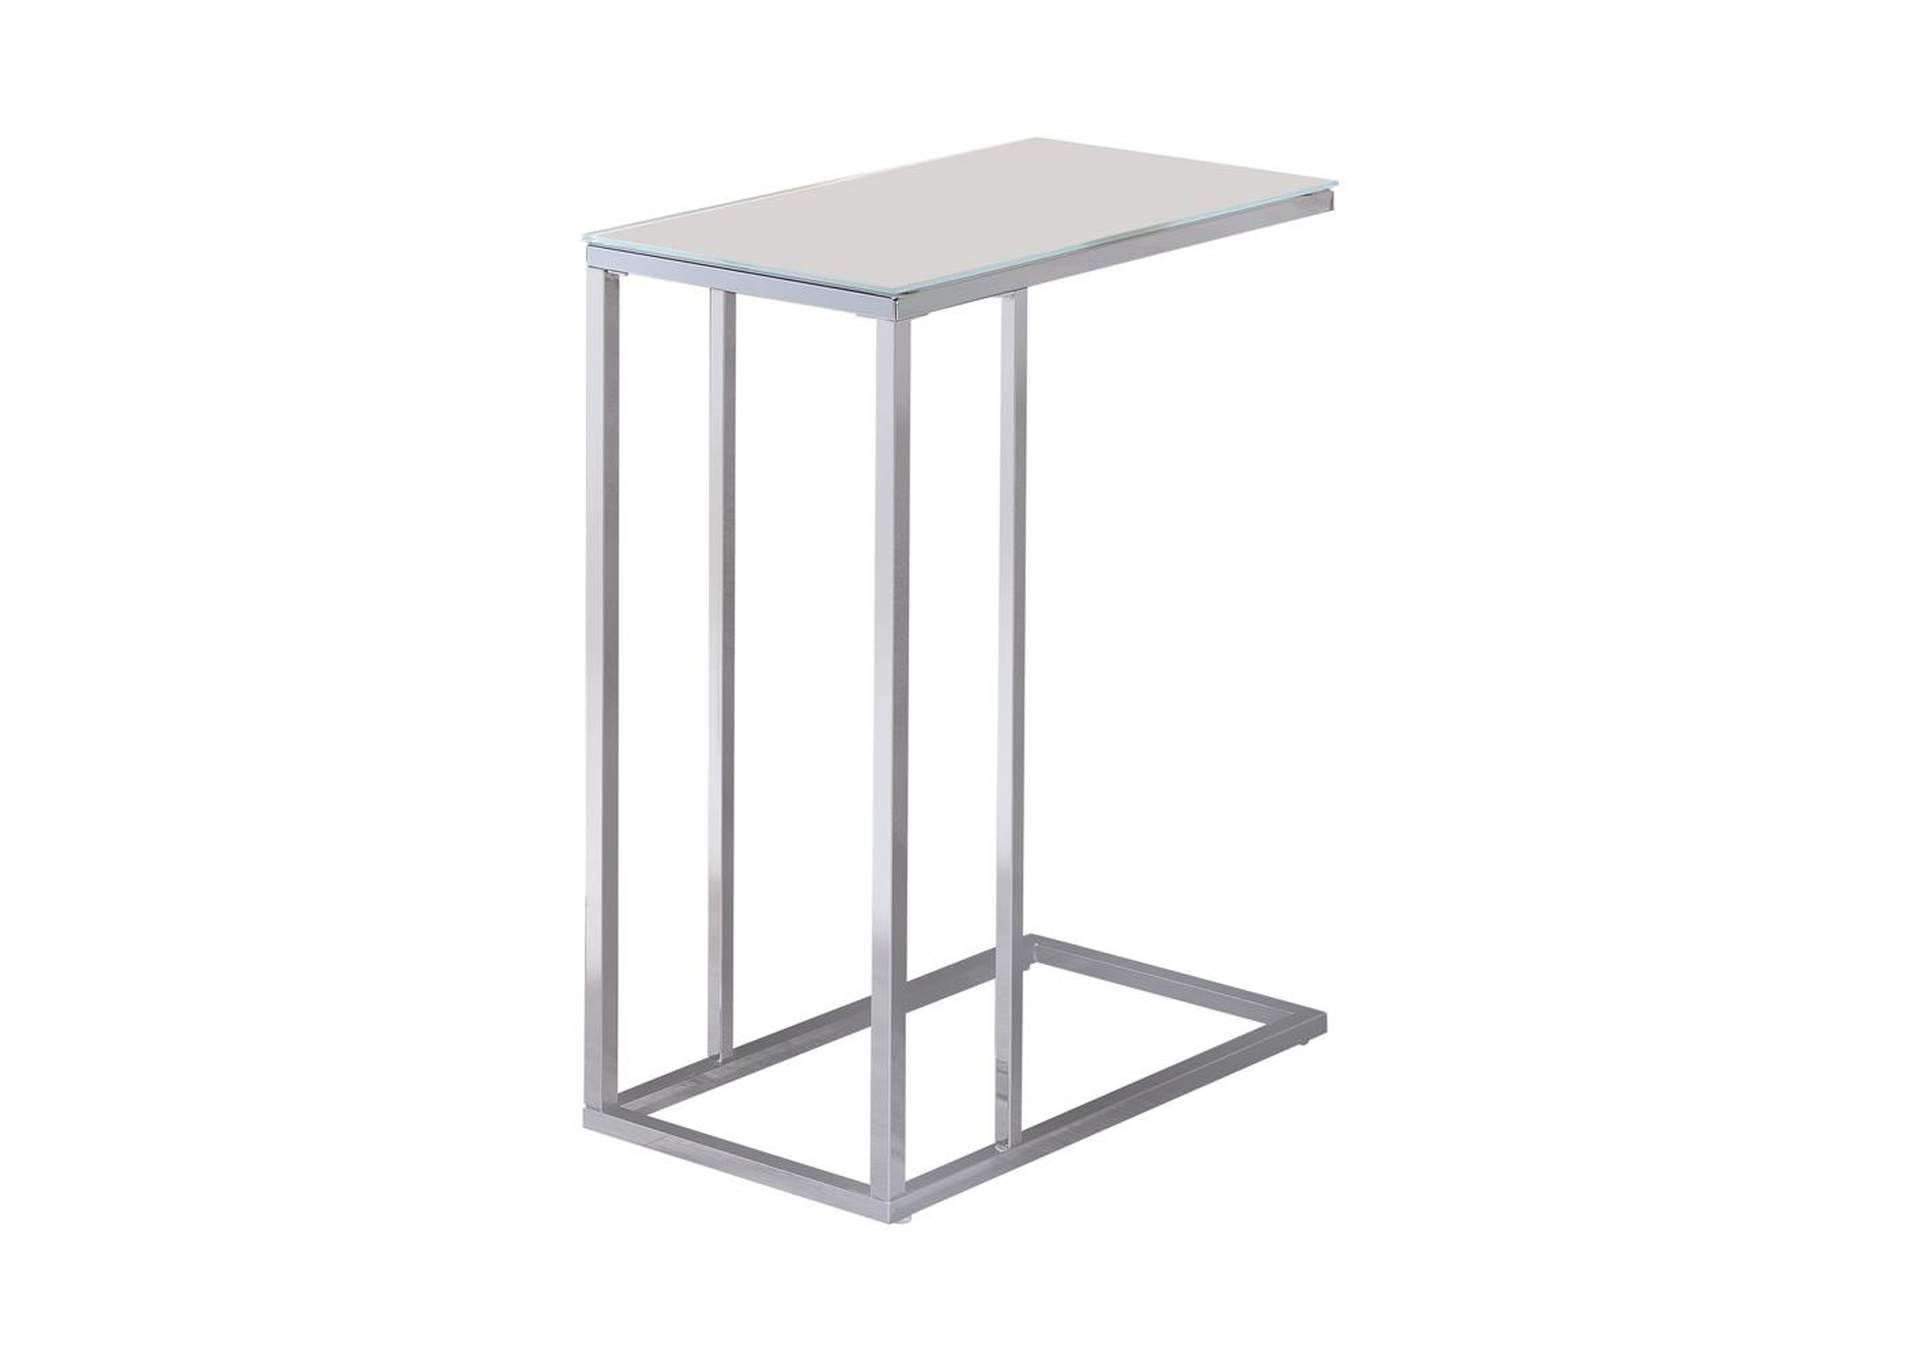 Swiss Coffee Transitional Chrome Snack Table,Coaster Furniture